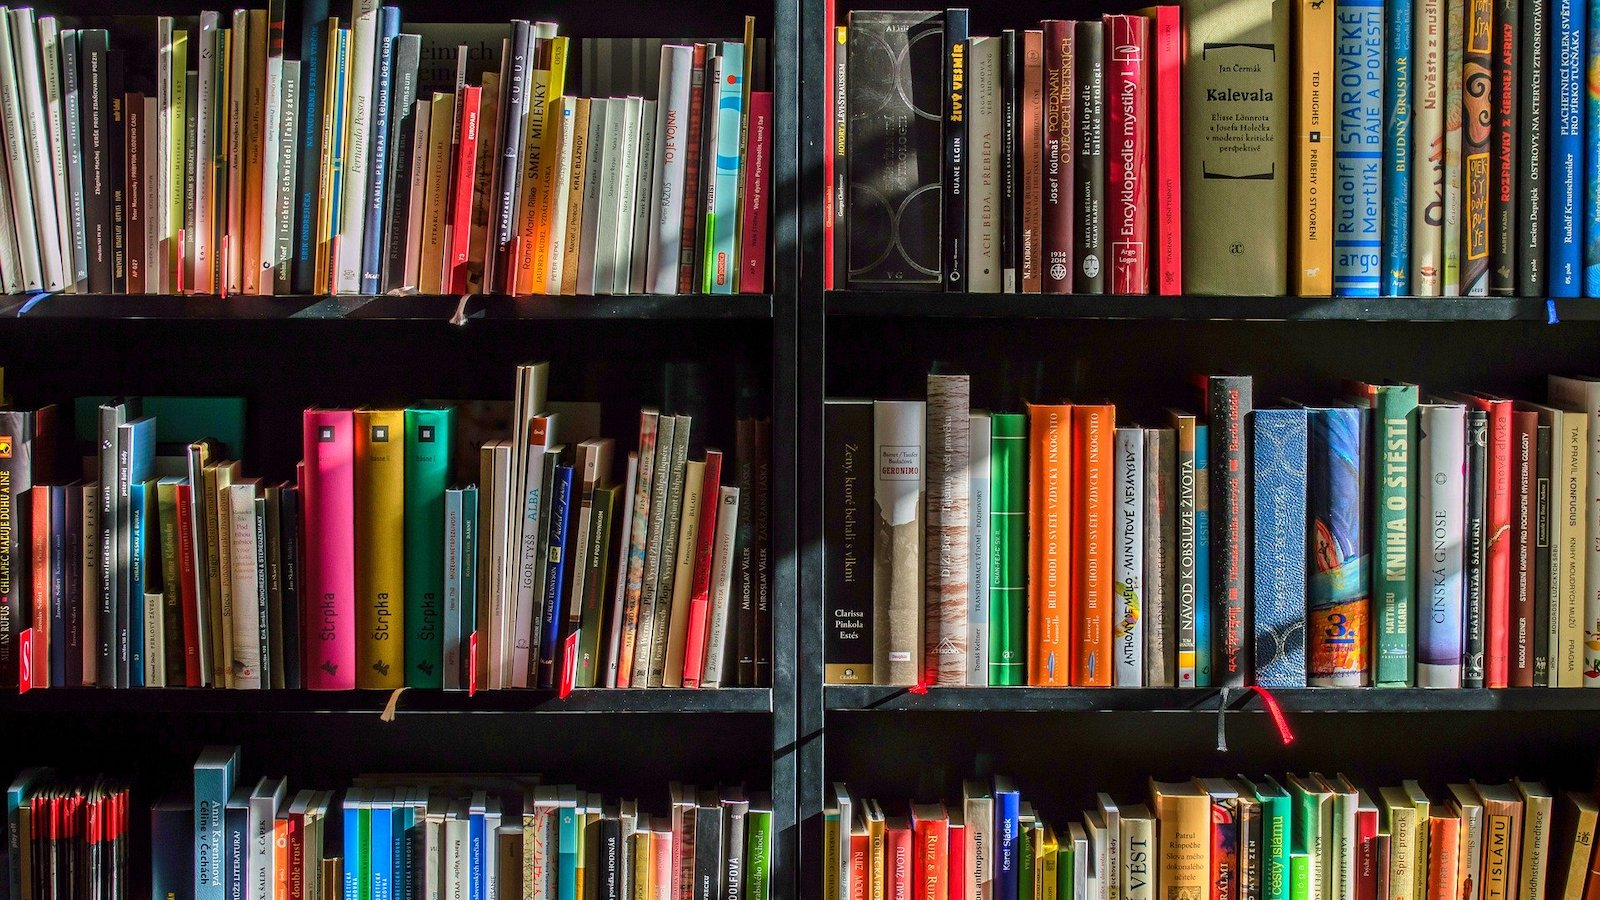 Books on a series of shelves